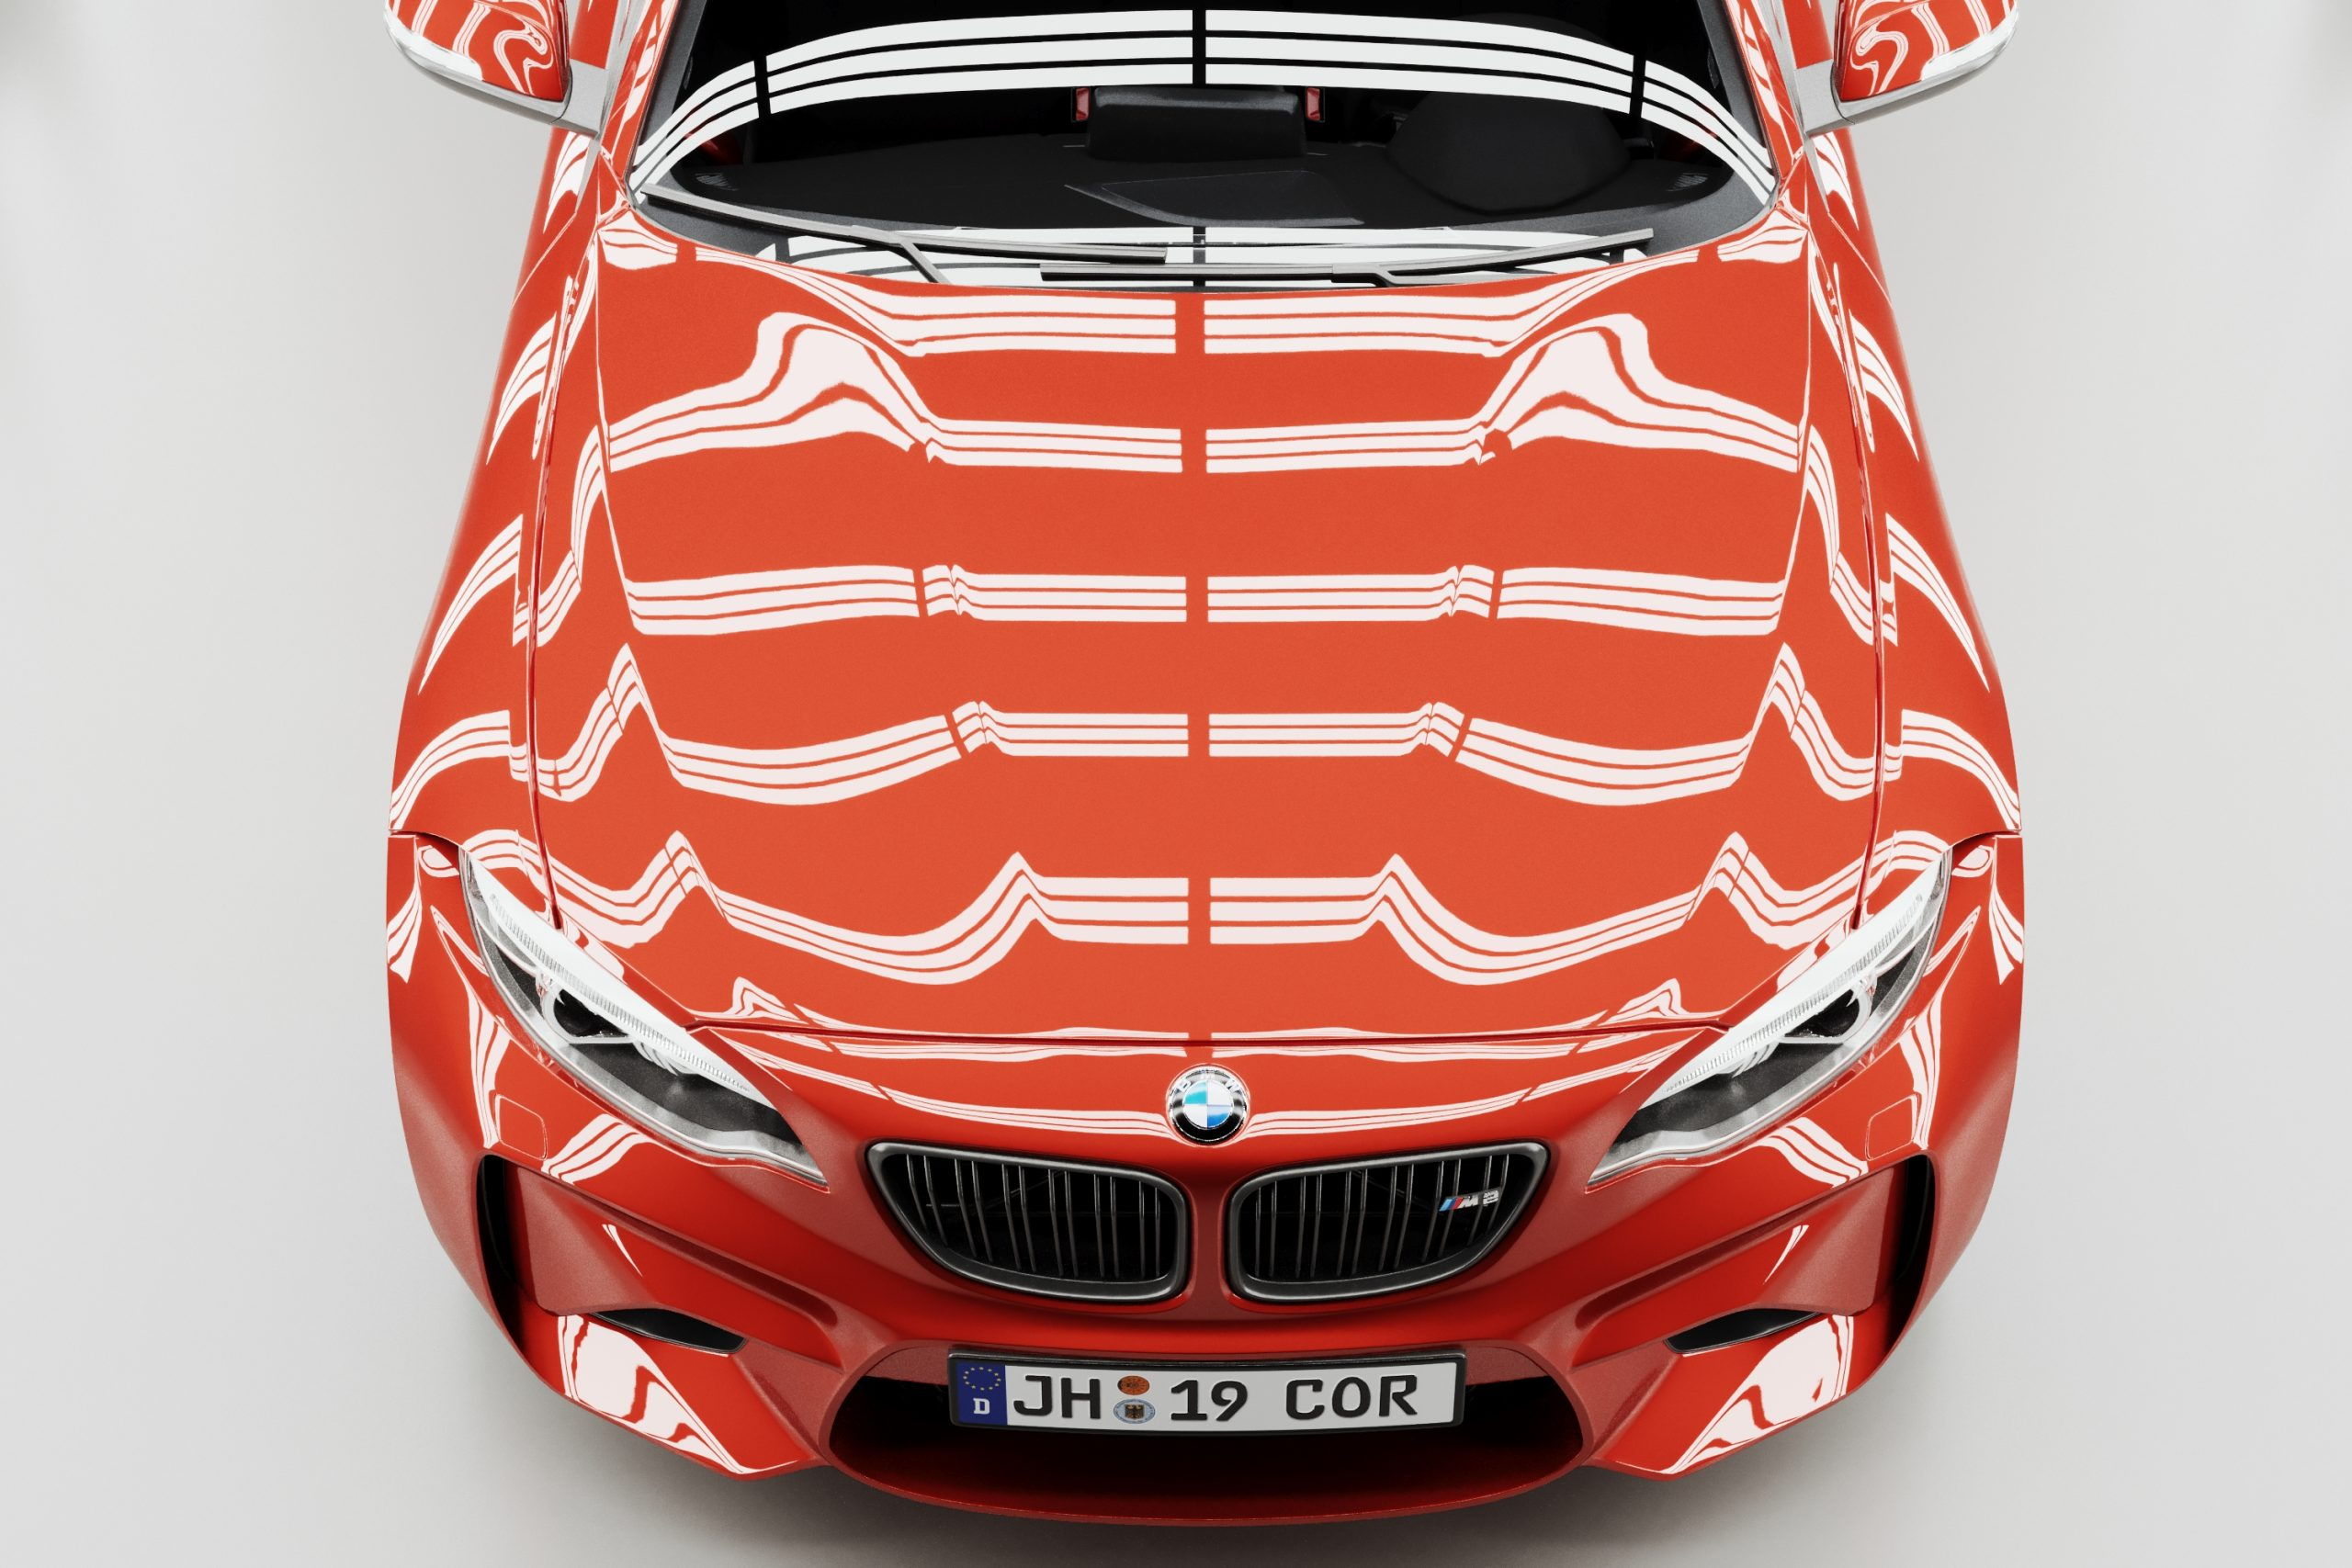 Red BMW M2 hood render in light tunnel with reflections